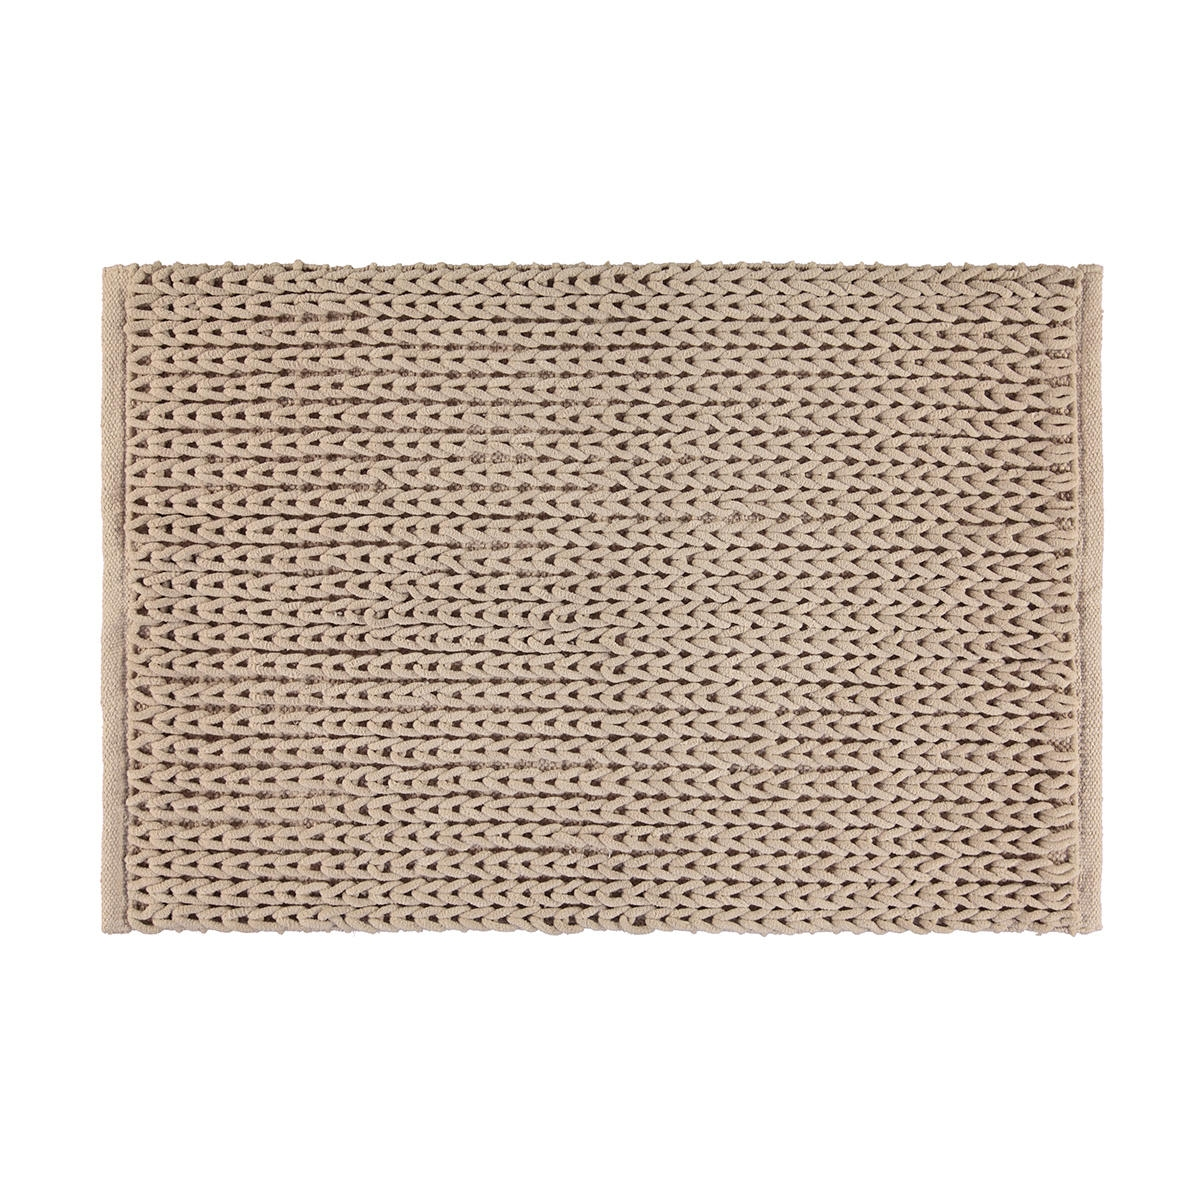 Anti Slip Bath Mat Kmart